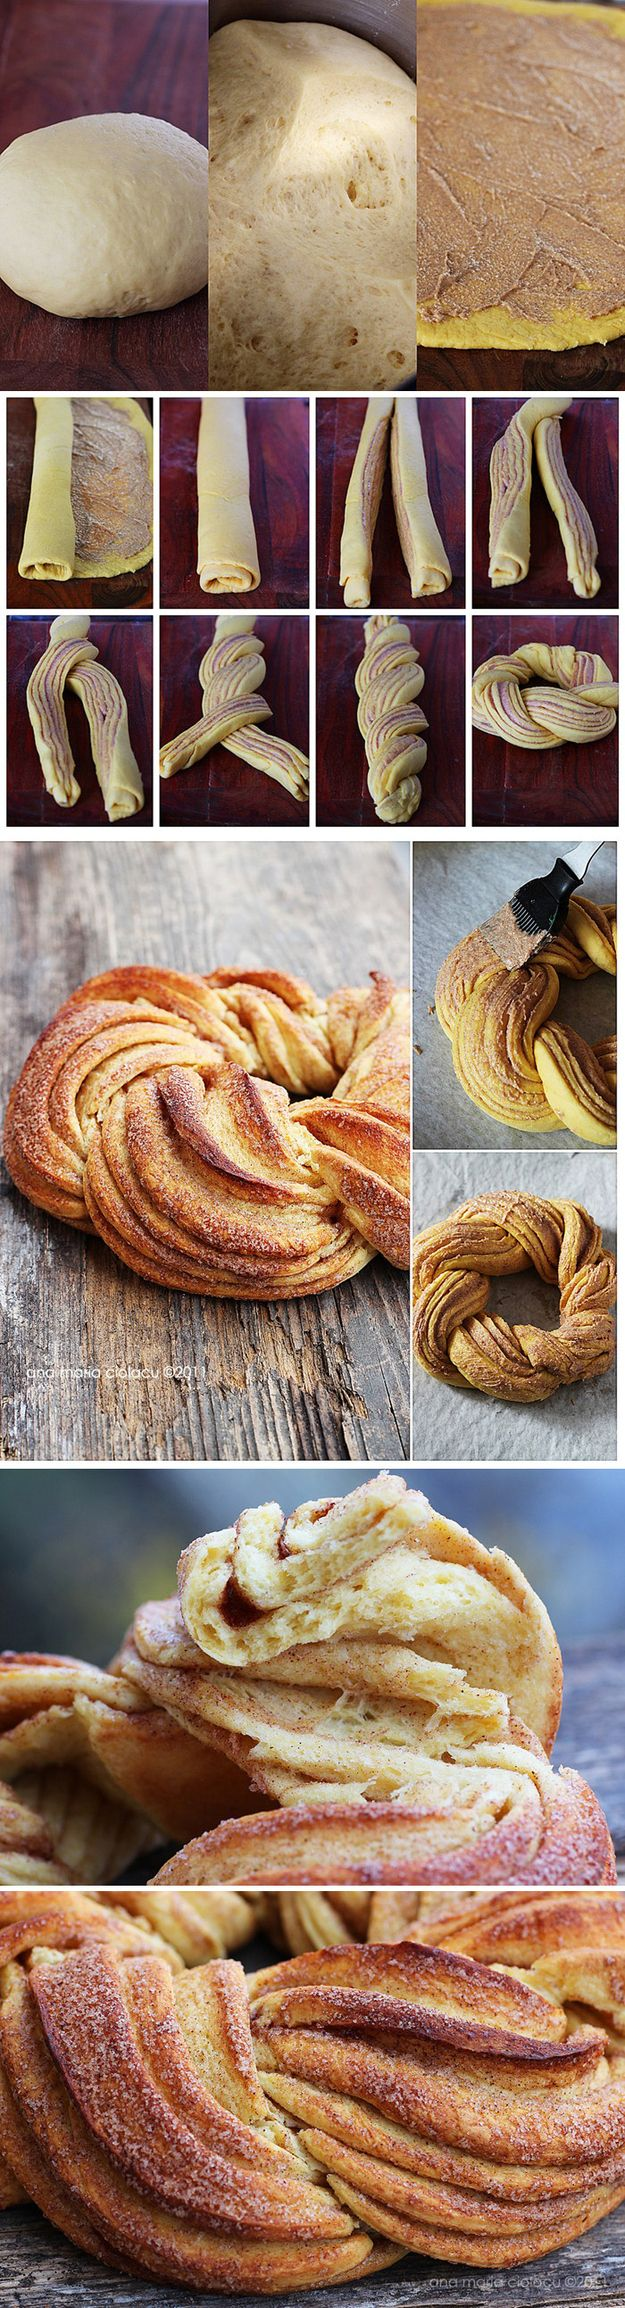 Twist Bread pattern. Make it with any filling, this one is dark spices and brown sugar but I'm going to make different versions. It just looks great.  Could also Make with canned/frozen dough (crescent, biscuit, pastry)  Idea from Estonian Kringel bread